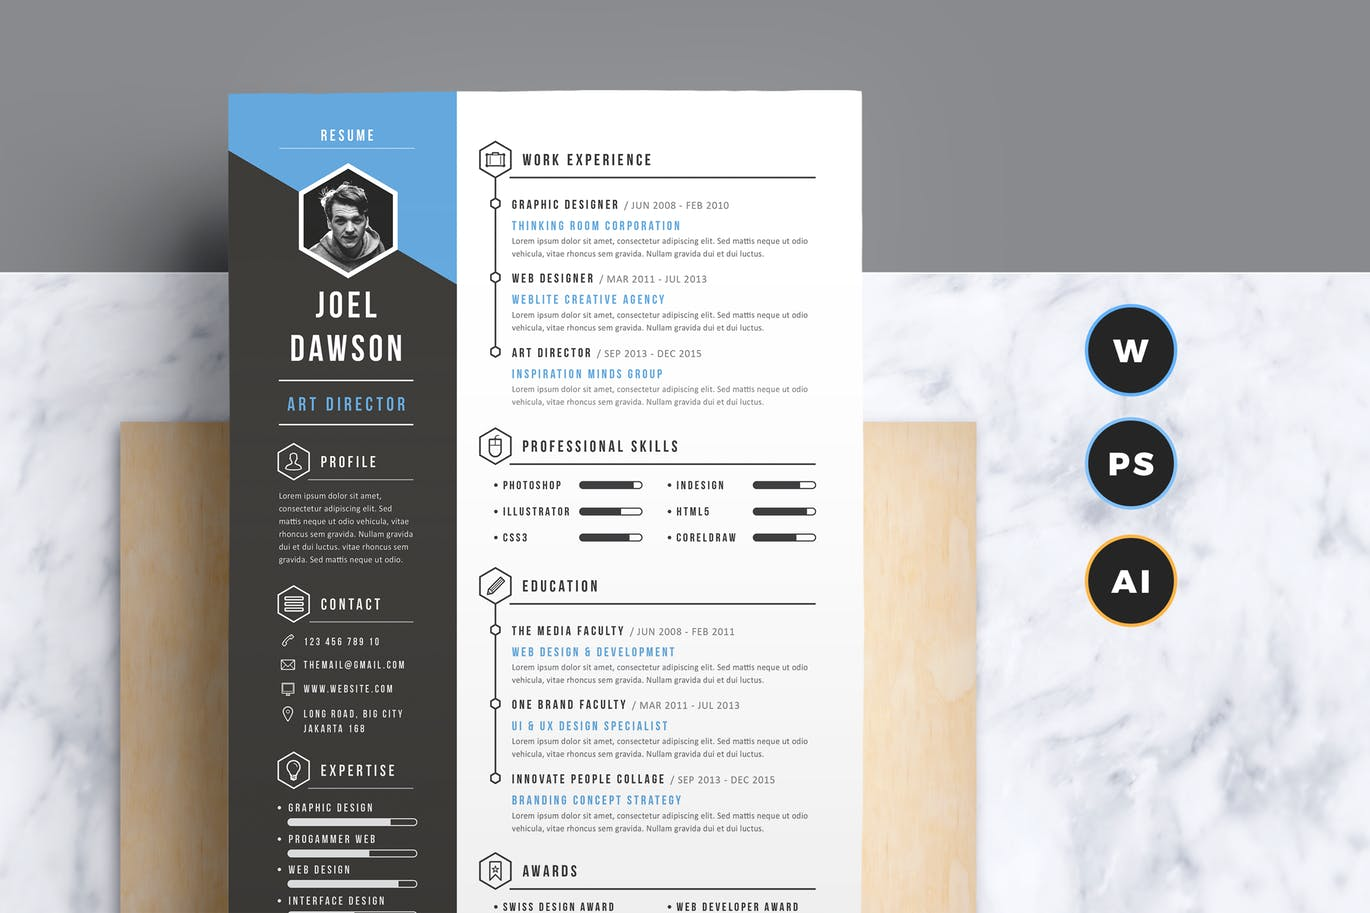 yet another great resume template for coders and designers this template features plenty of sections suitable for designers to showcase their skills and